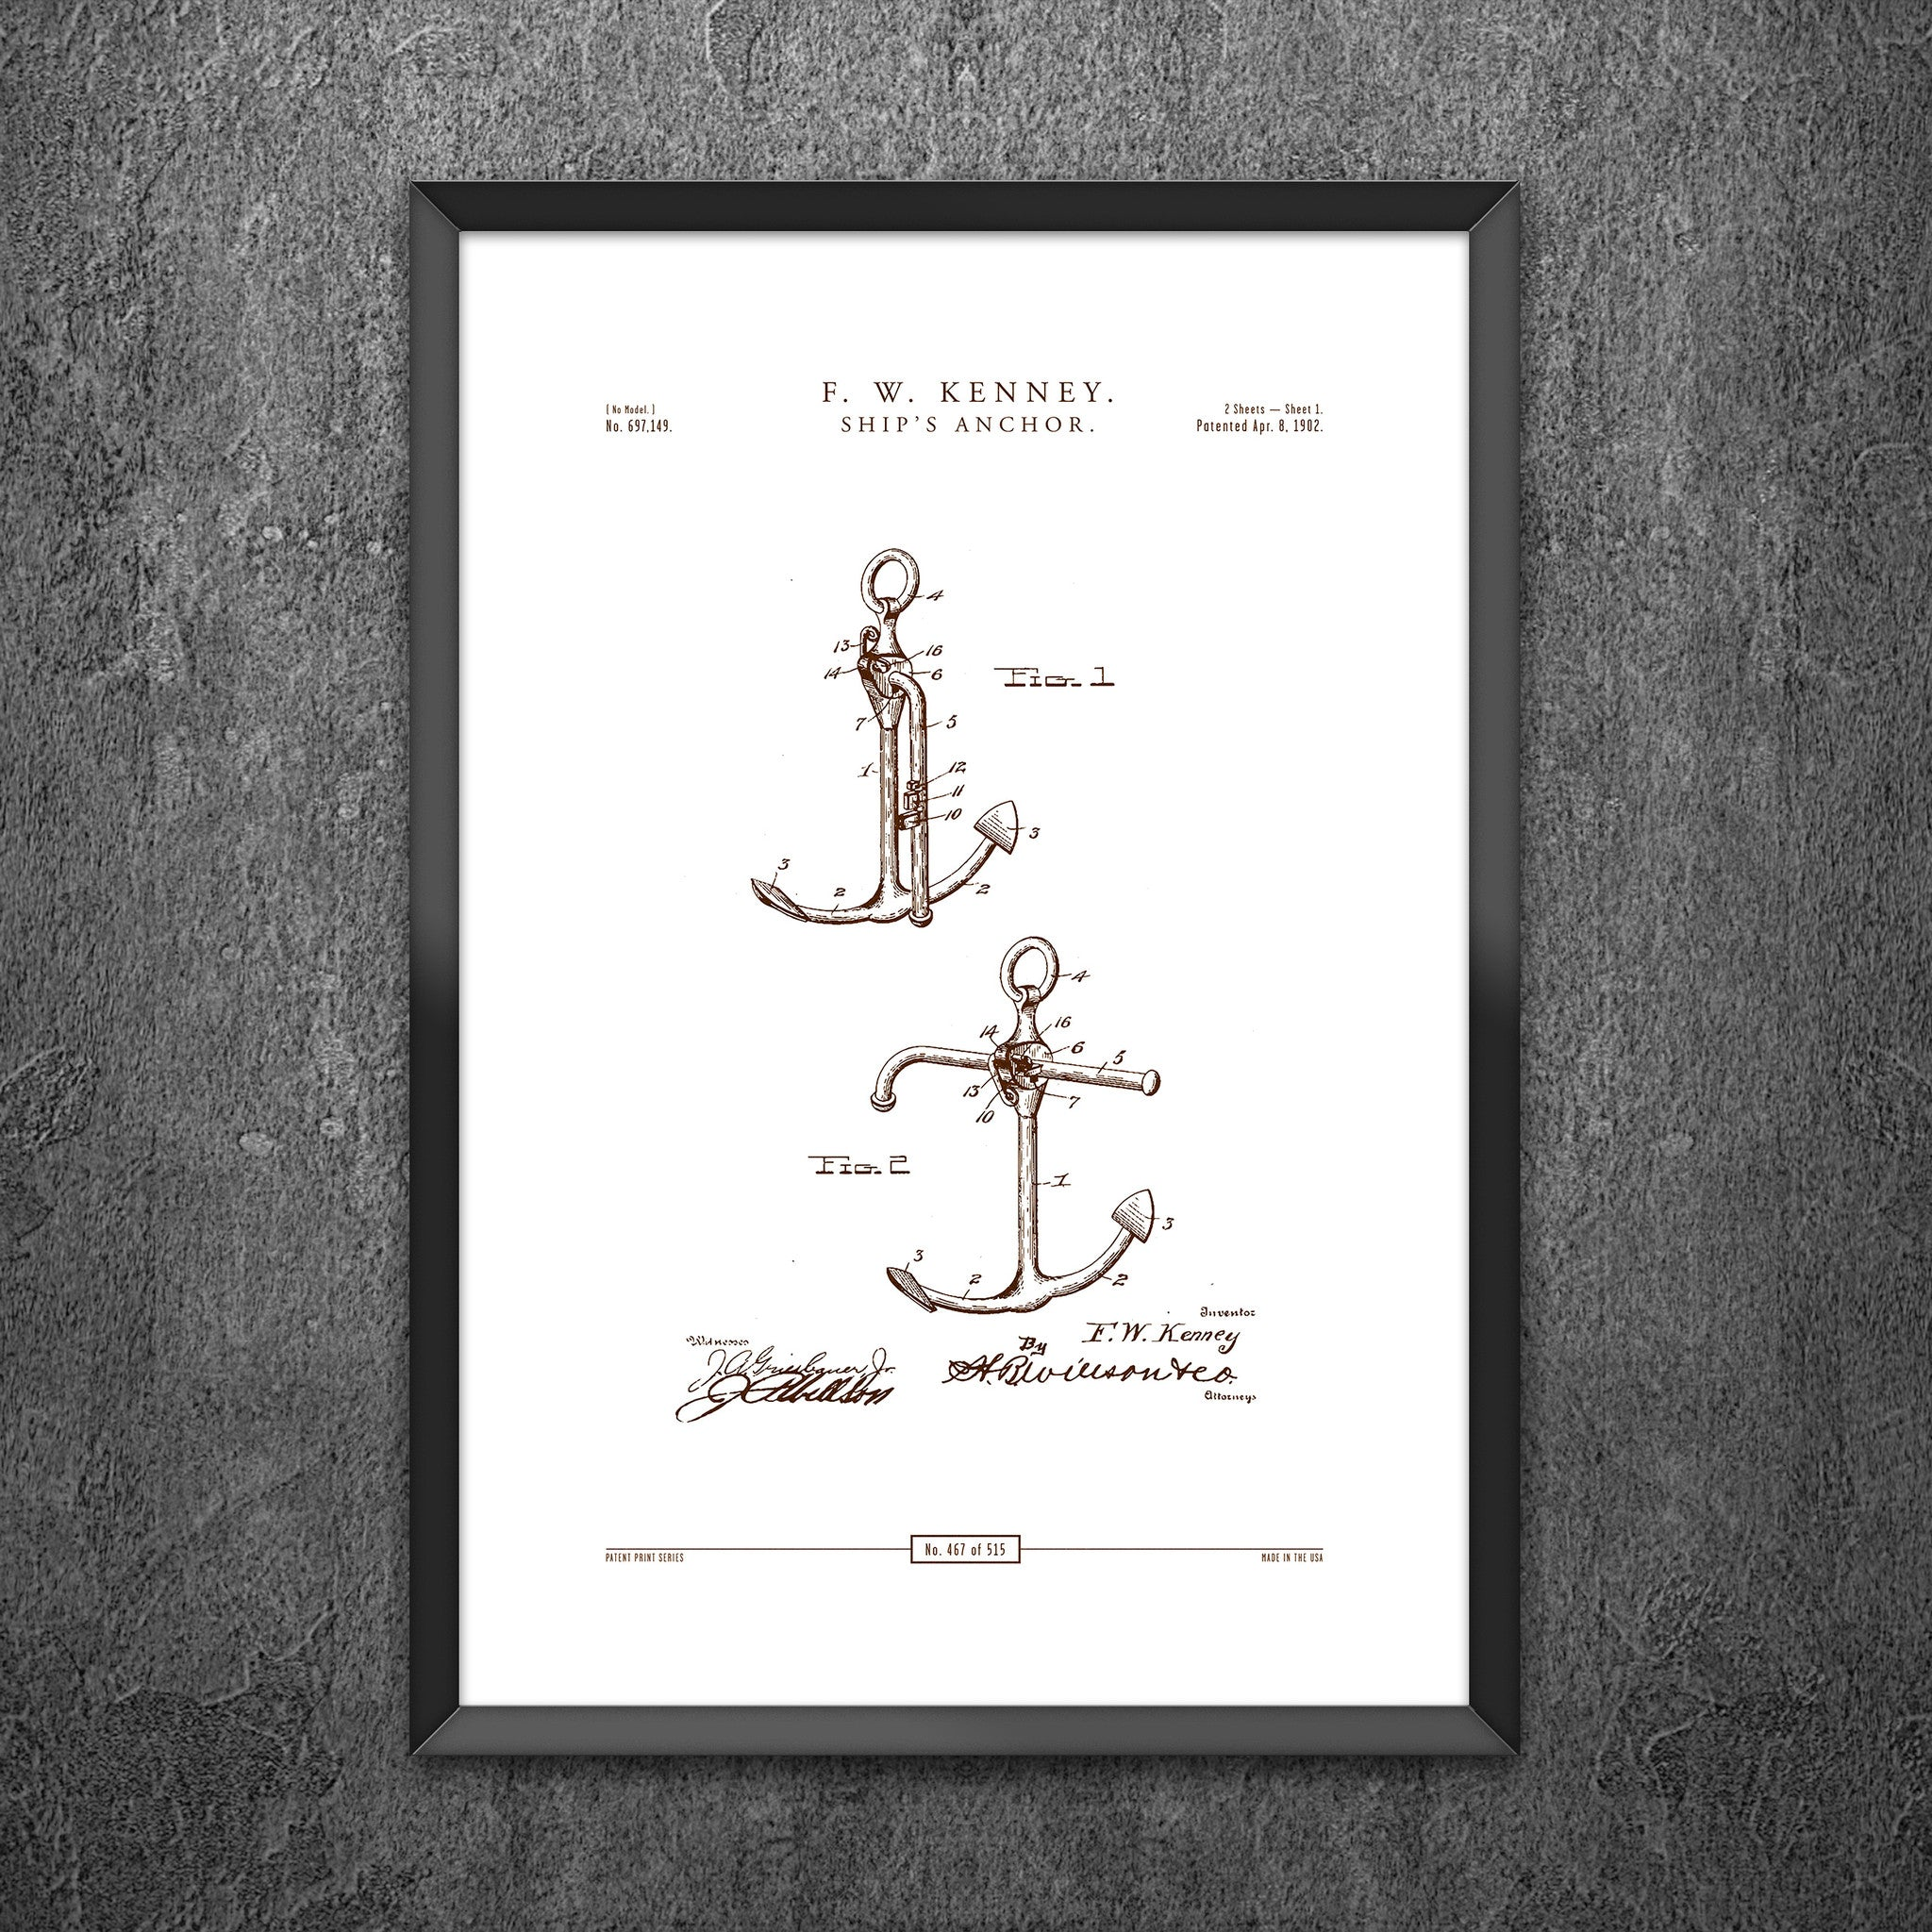 No 467 - Ships Anchor